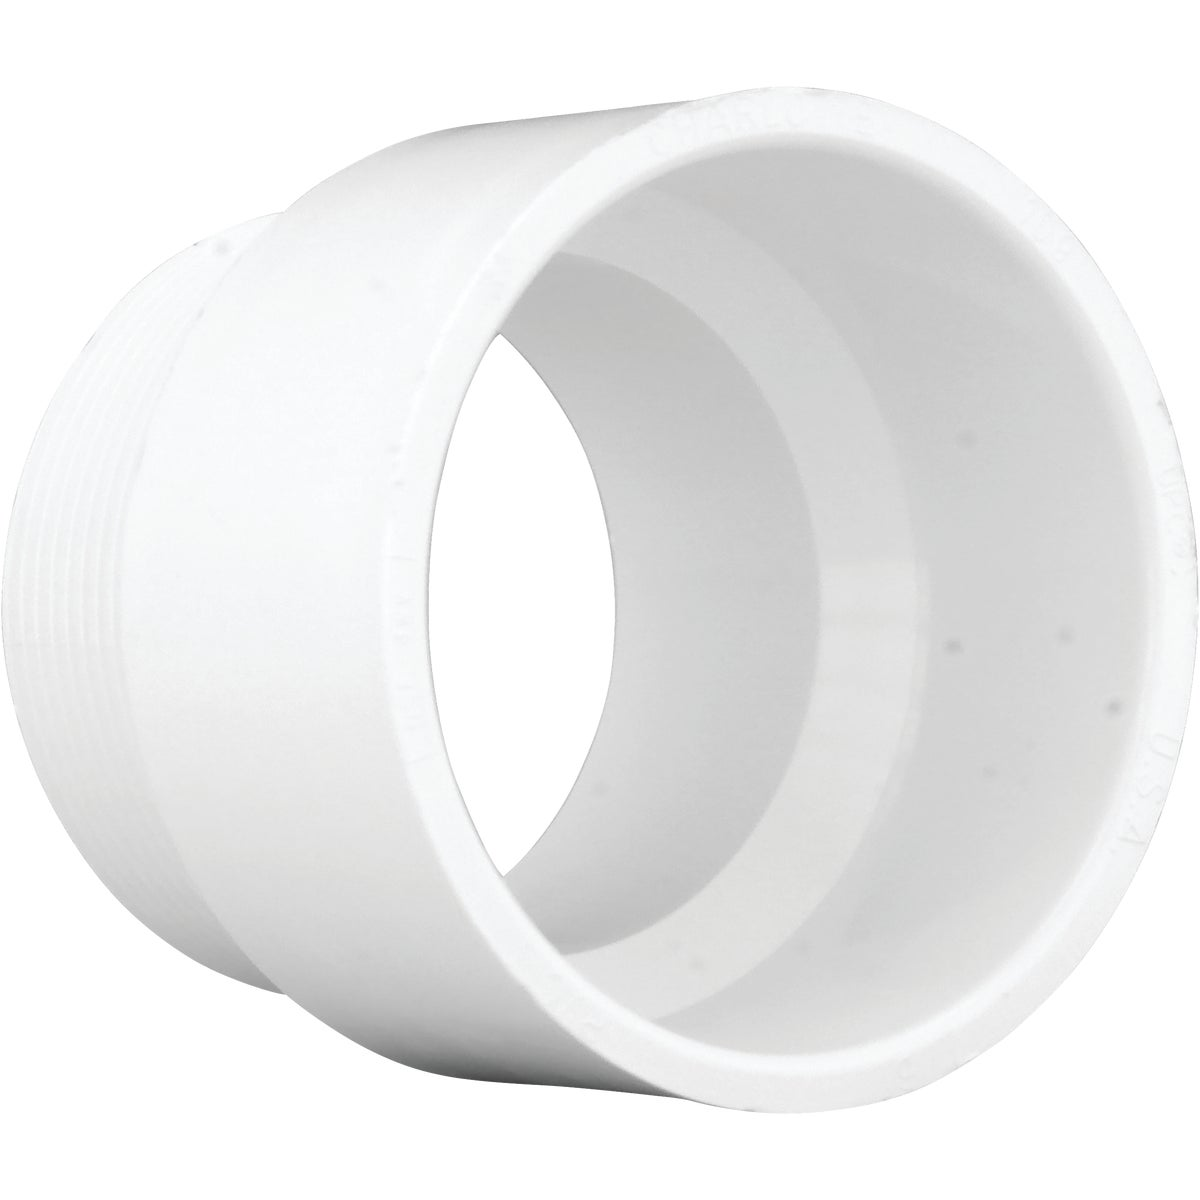 "3"" PVC-DWV MALE ADAPTER - 70430 by Genova Inc  Pvc Dwv"